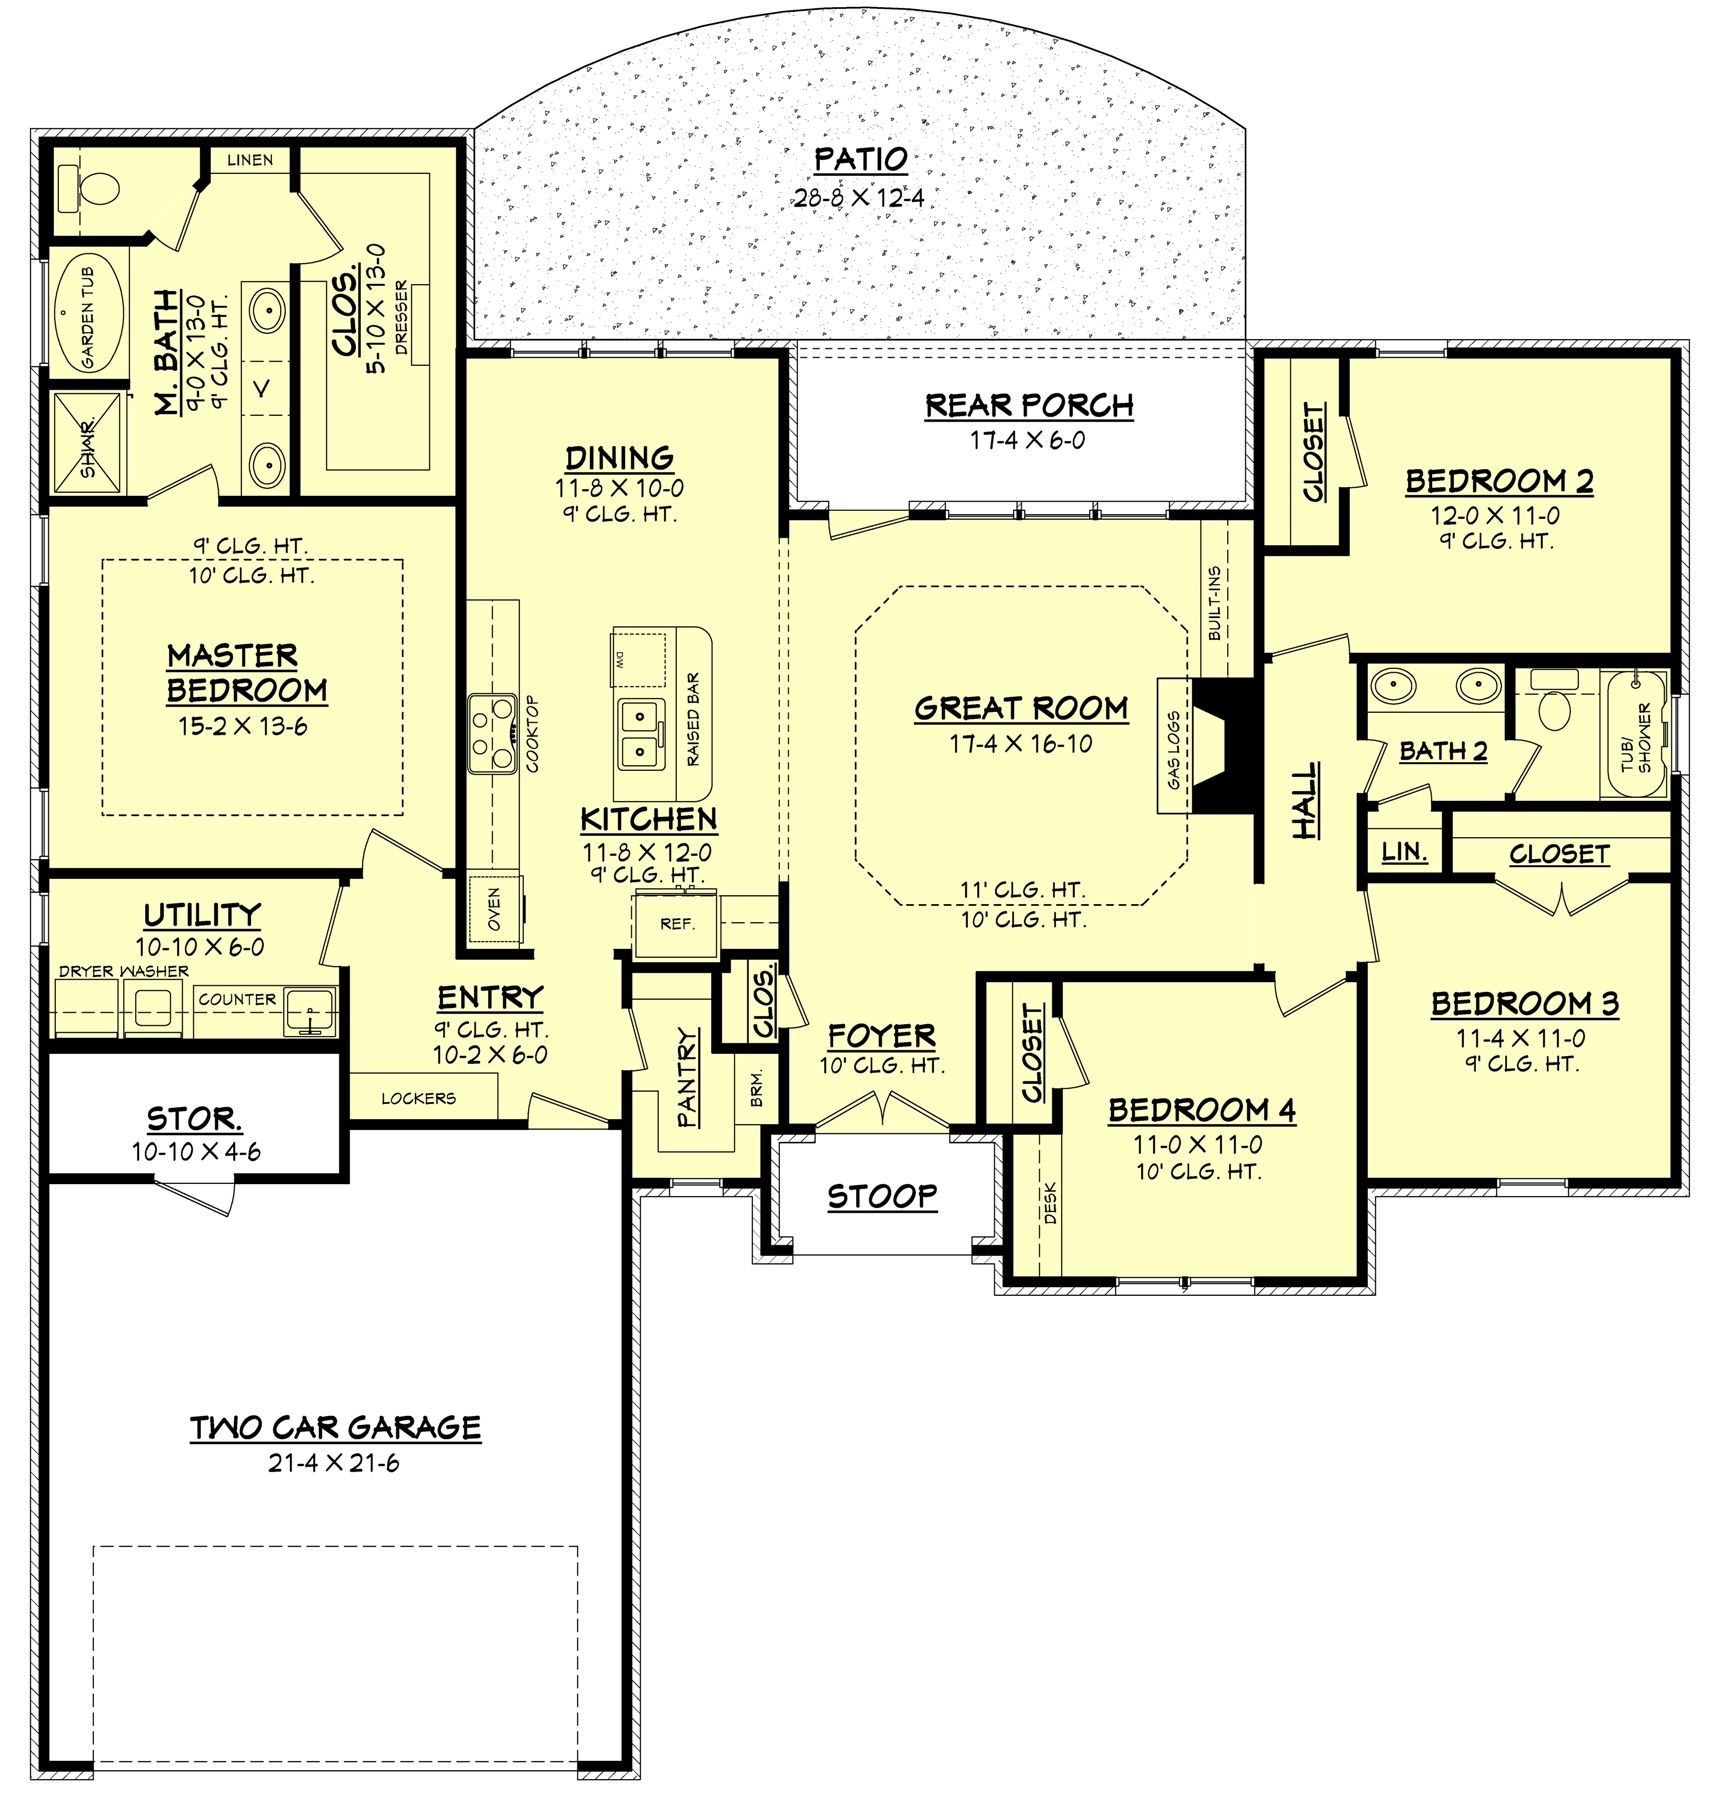 Ranch Style House Plan 4 Beds 2 Baths 1875 Sq Ft Plan 430 87 Main Floor Plan Houseplans Com Ranch Style House Plans New House Plans 4 Bedroom House Plans